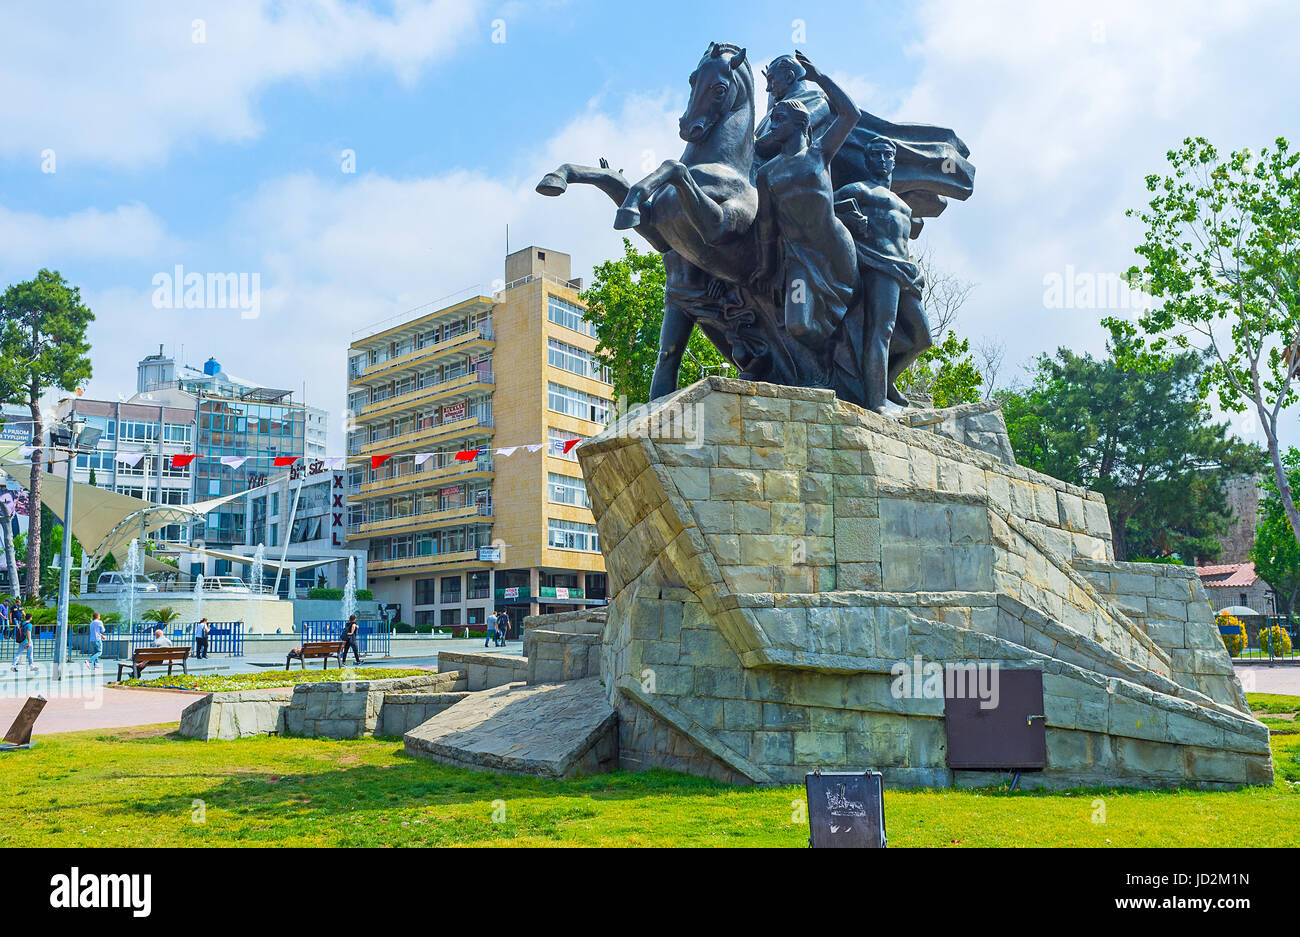 ANTALYA, TURKEY - MAY 6, 2017: The equestrian statue of Ataturk in Republic Square, surrounded by modern hotels - Stock Image